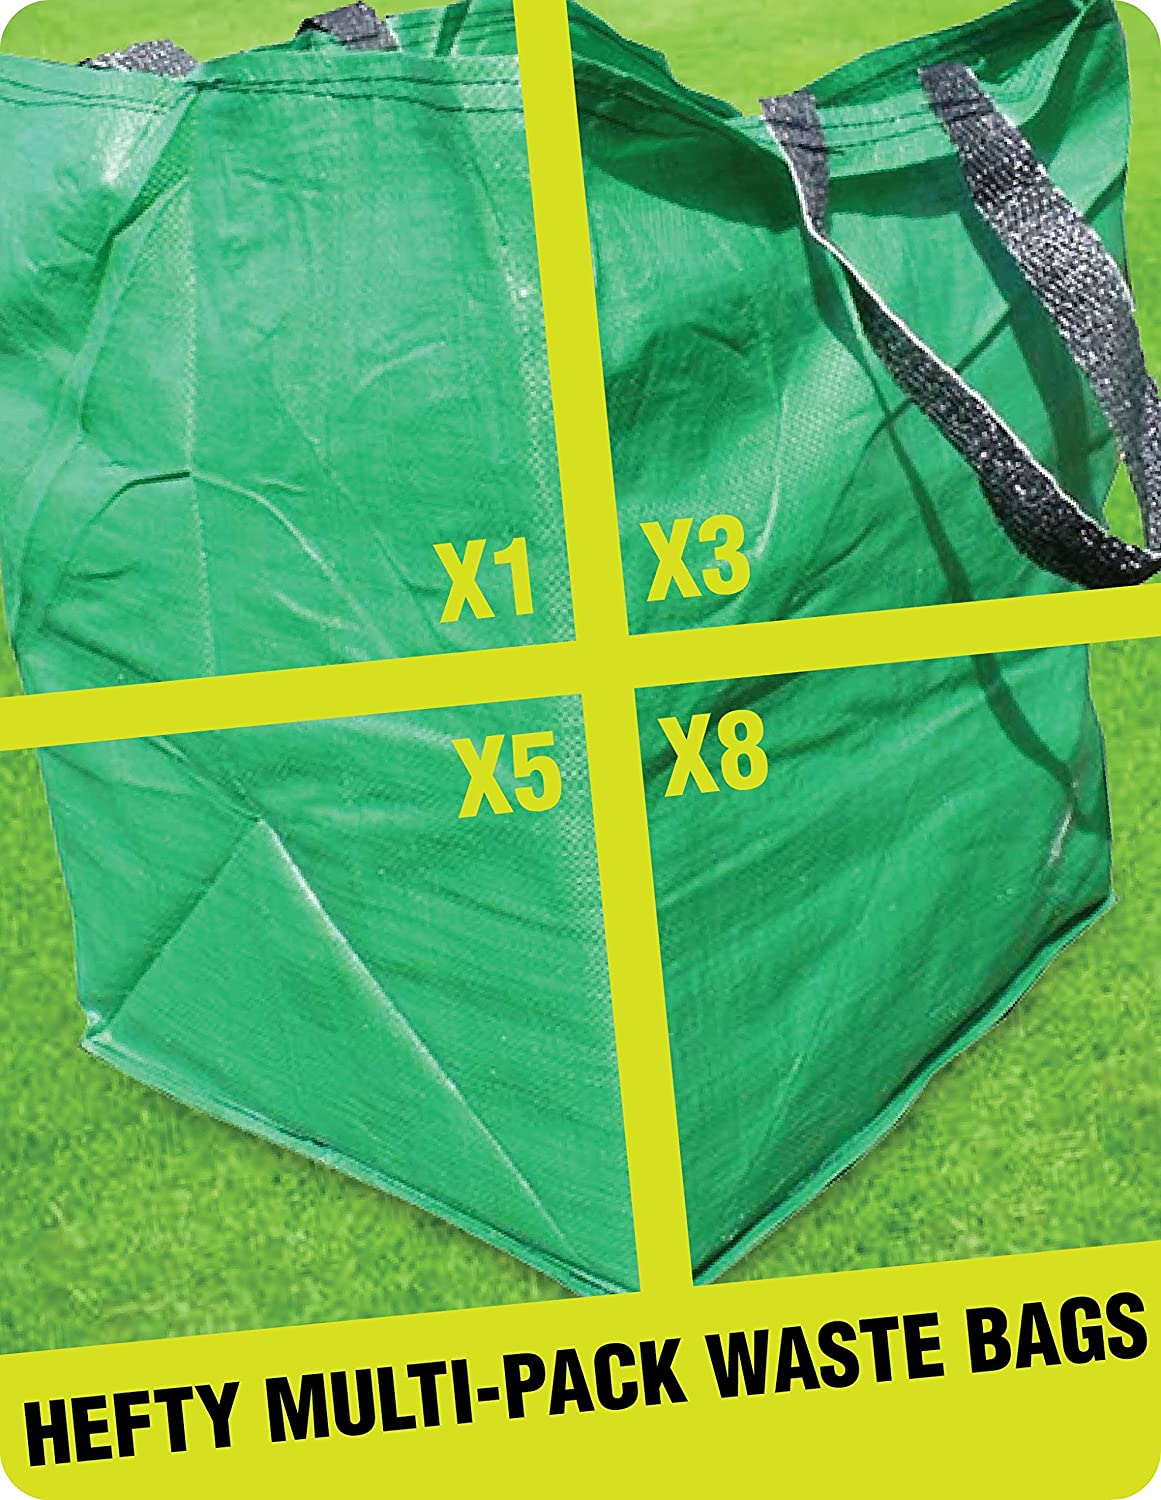 3 X GARDEN WASTE CUBE BAGS - Best Multipurpose HEFTY Reusable Sack Storage Bag For The Disposal Of Leaves, Weeds & Grass Cuttings - (136 Litre Capacity) (3) Rapid Spirit